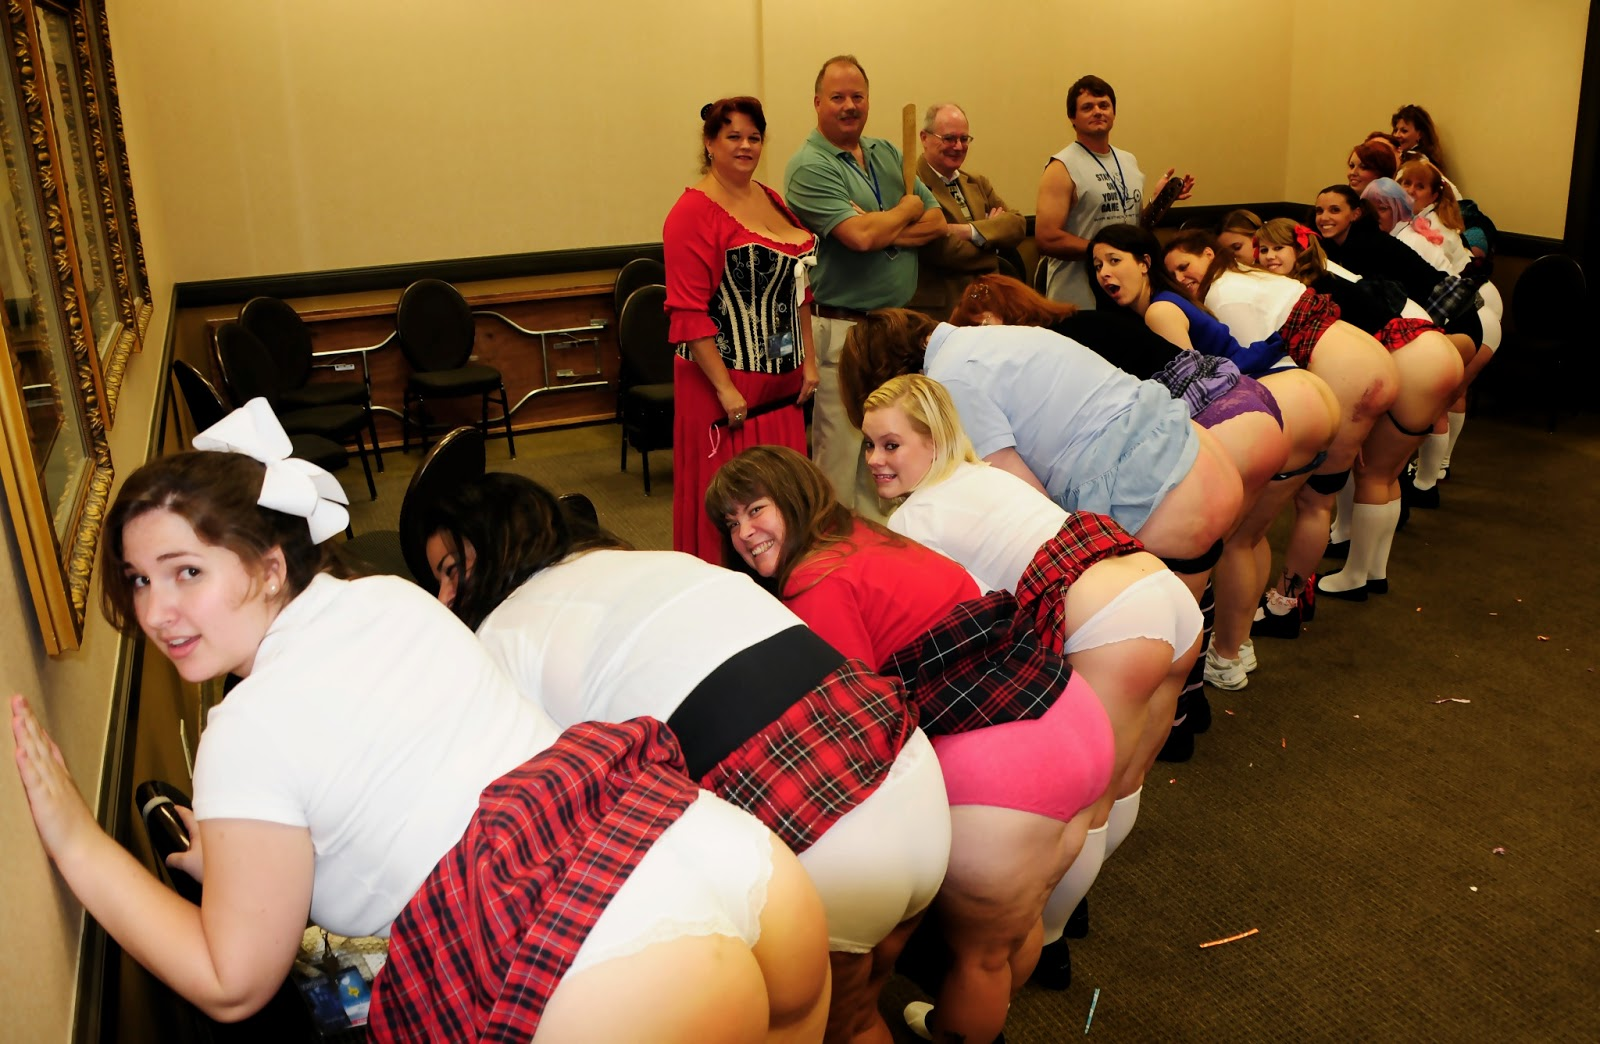 @ spanking party Lots of naughty bottoms at the Naughty Schoolgirl Party